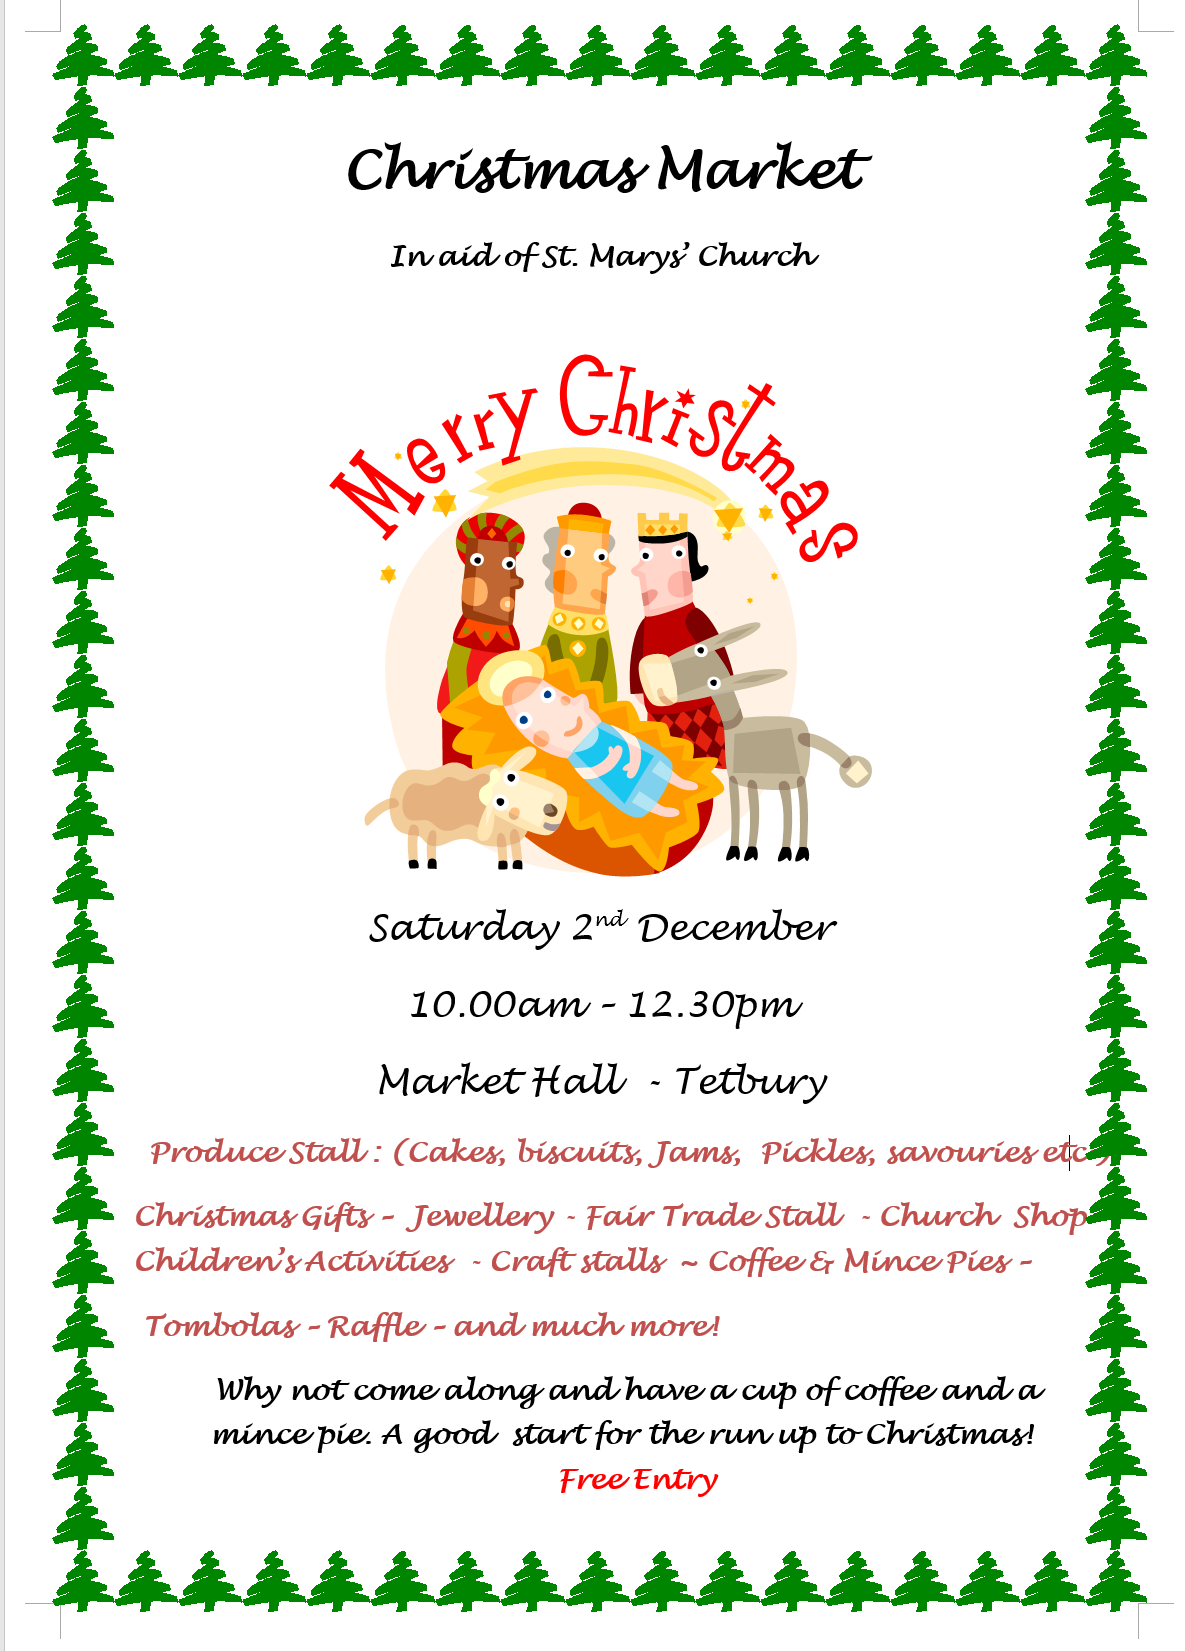 Christmas Market. 2nd December in the Market Hall